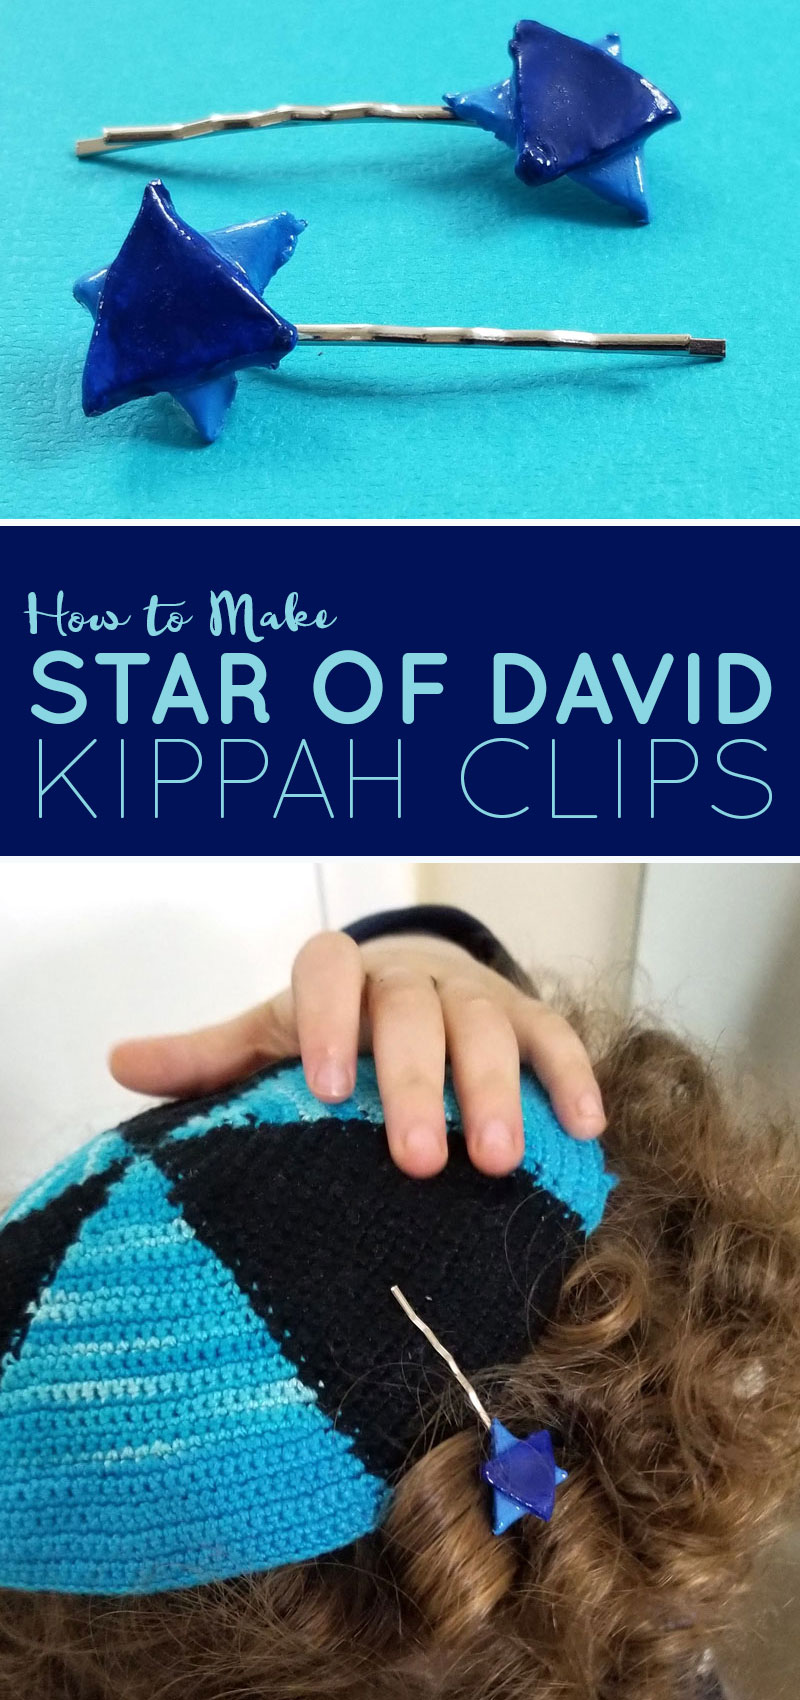 A fun Jewish craft for moms - these clay star of david Kippah clips are super fun for celebrating an Upsherin or Jewish third birthday party!